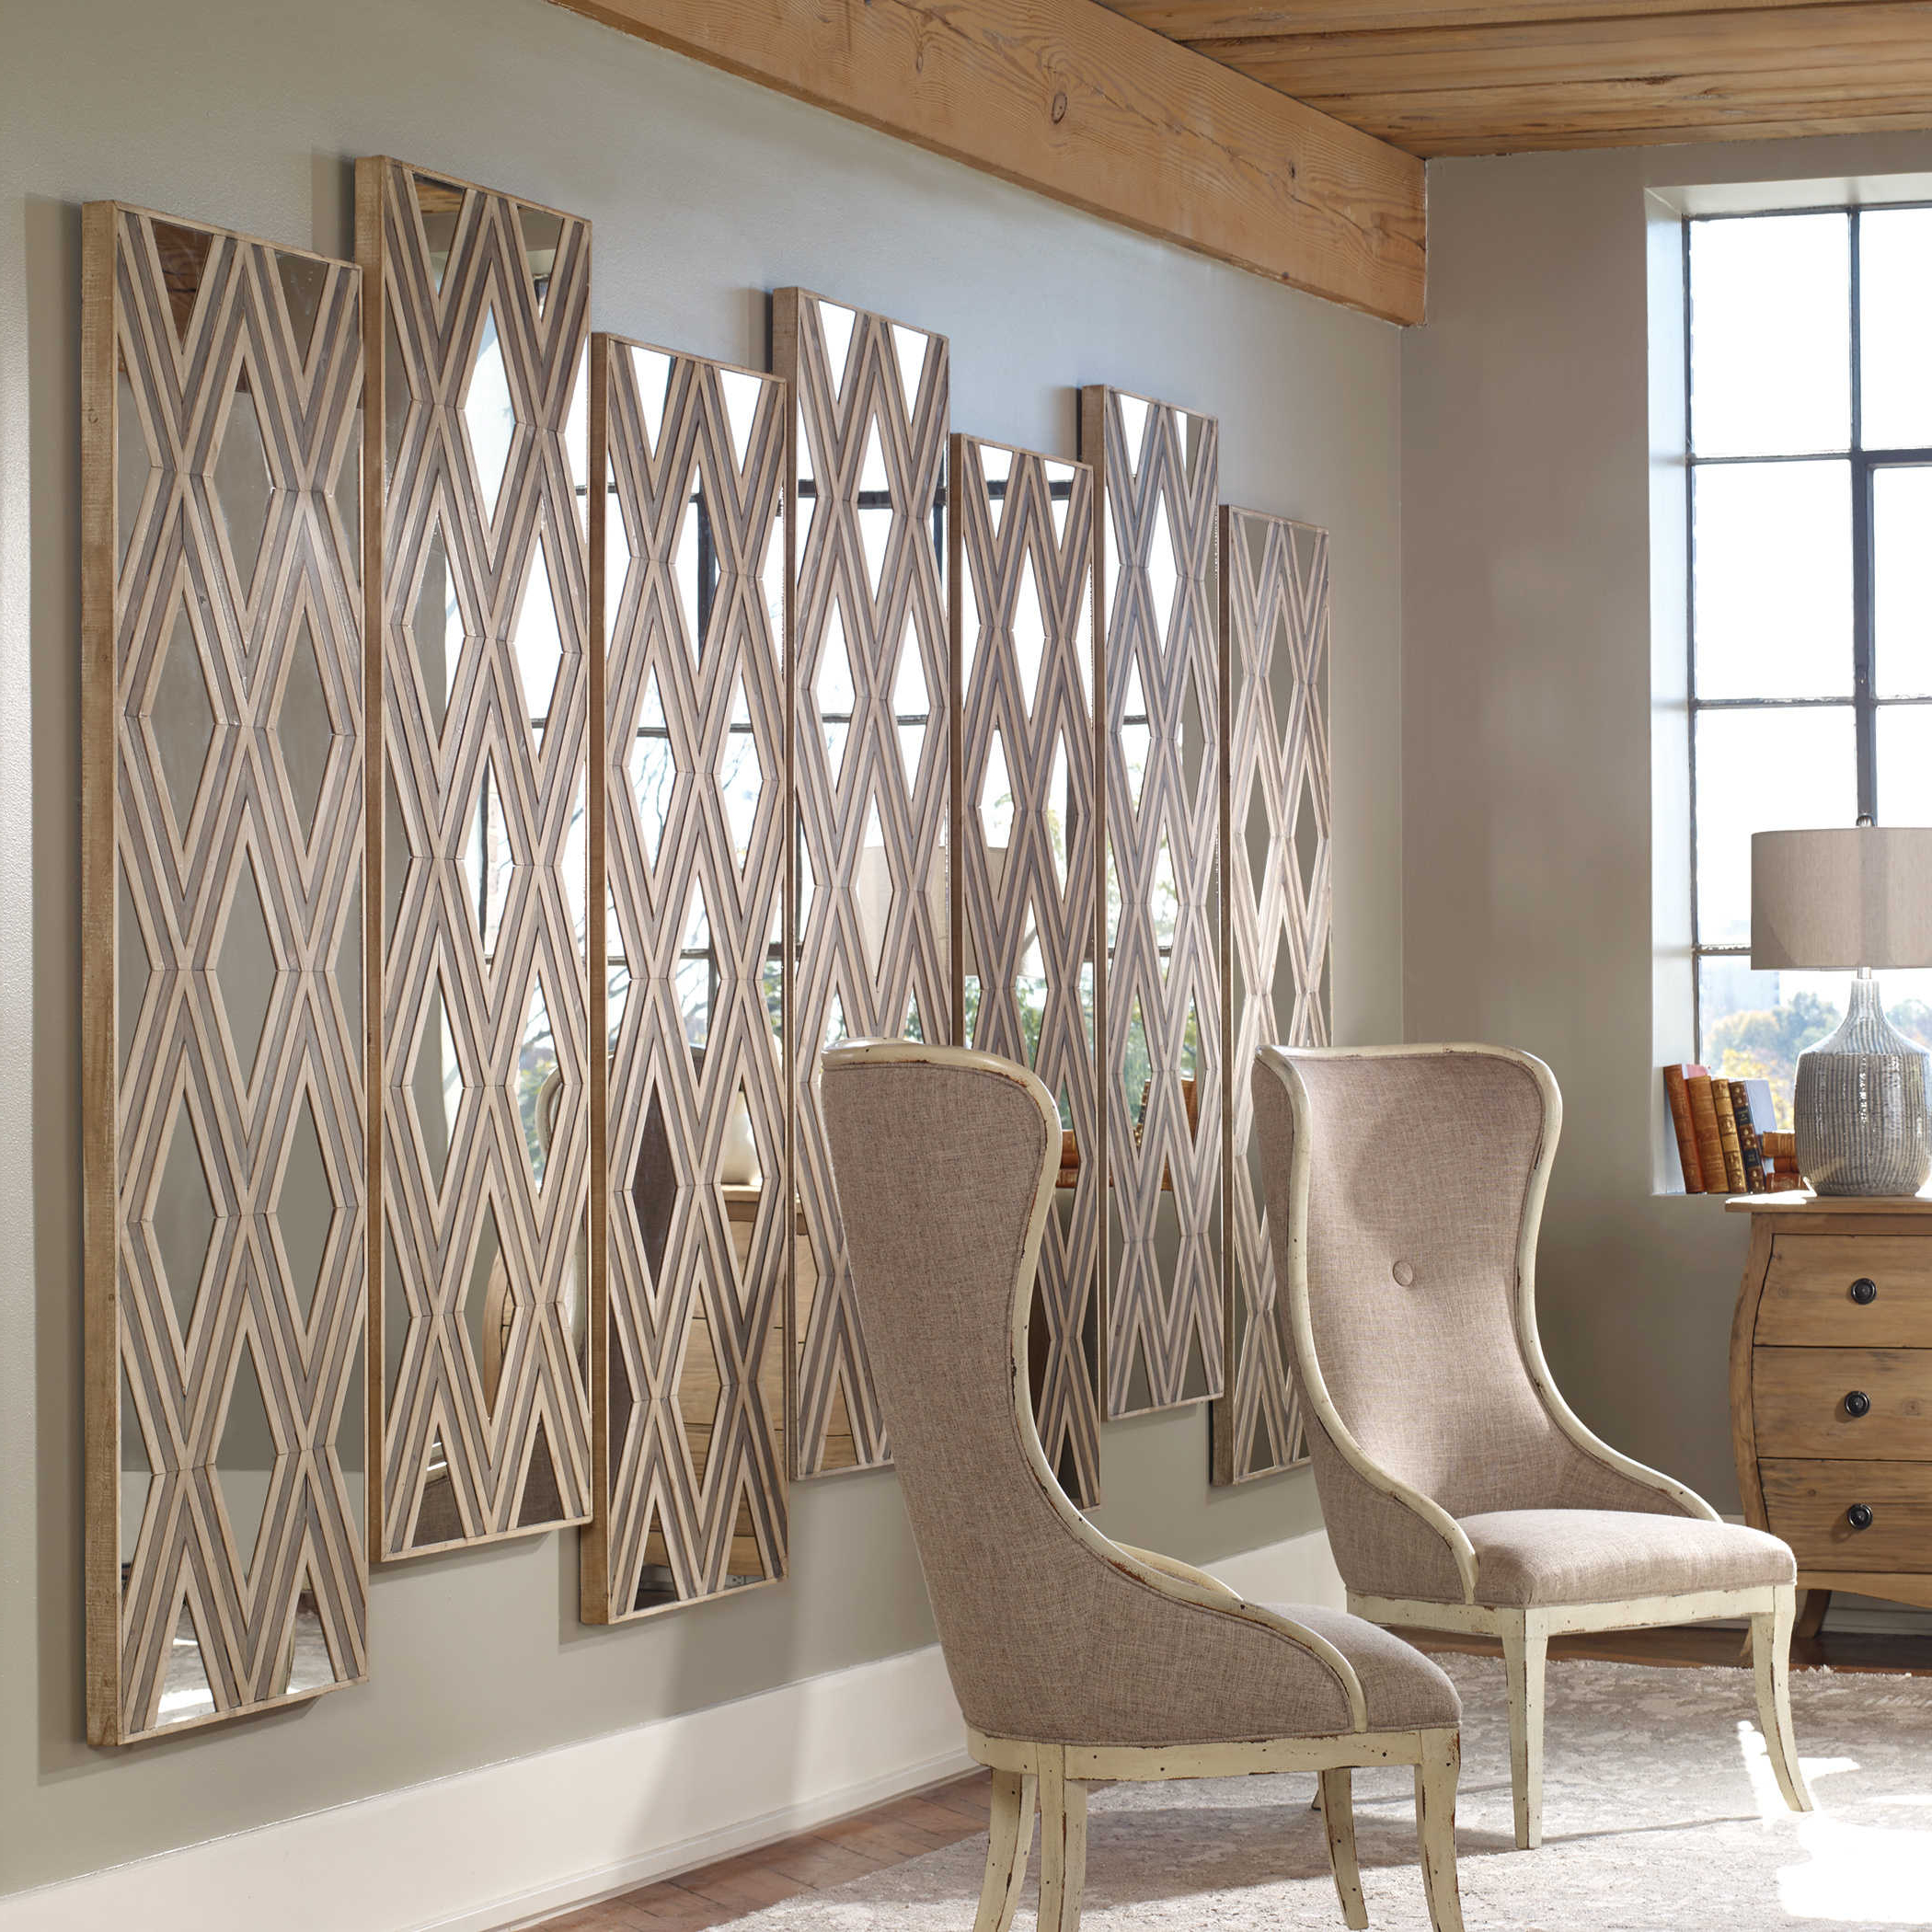 Uttermost Wall Mirrors Intended For Well Liked Uttermost Tahira Geometric Argyle Pattern Wall Mirror (Gallery 5 of 20)